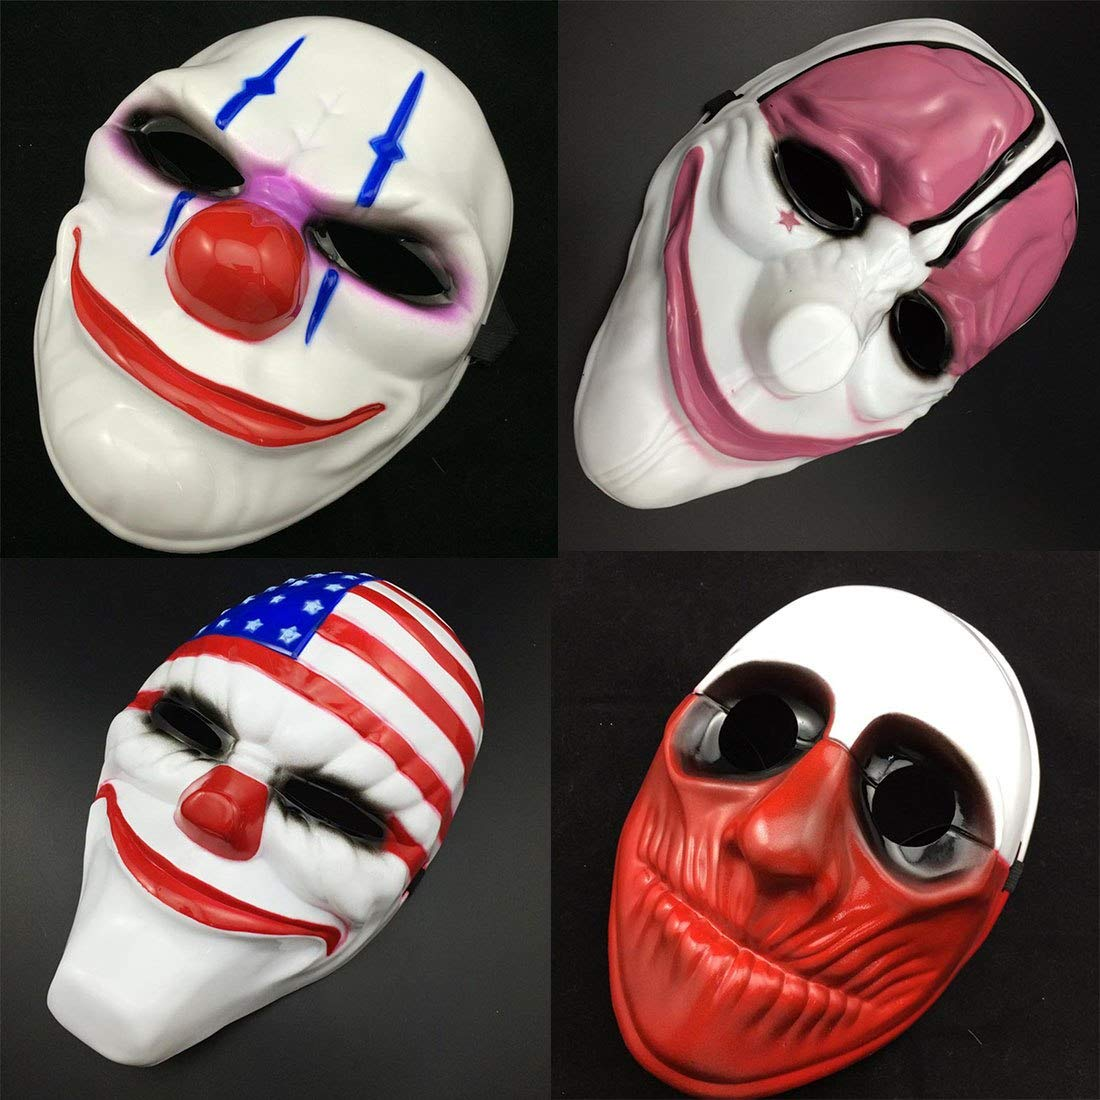 Clown Mask - Style 1pc Pvc Scary Clown Mask Halloween Mascara Carnaval Fancy Dress Costume - Slipknot Hair Woman Mouth Chinless From Plastic Half Dark ...